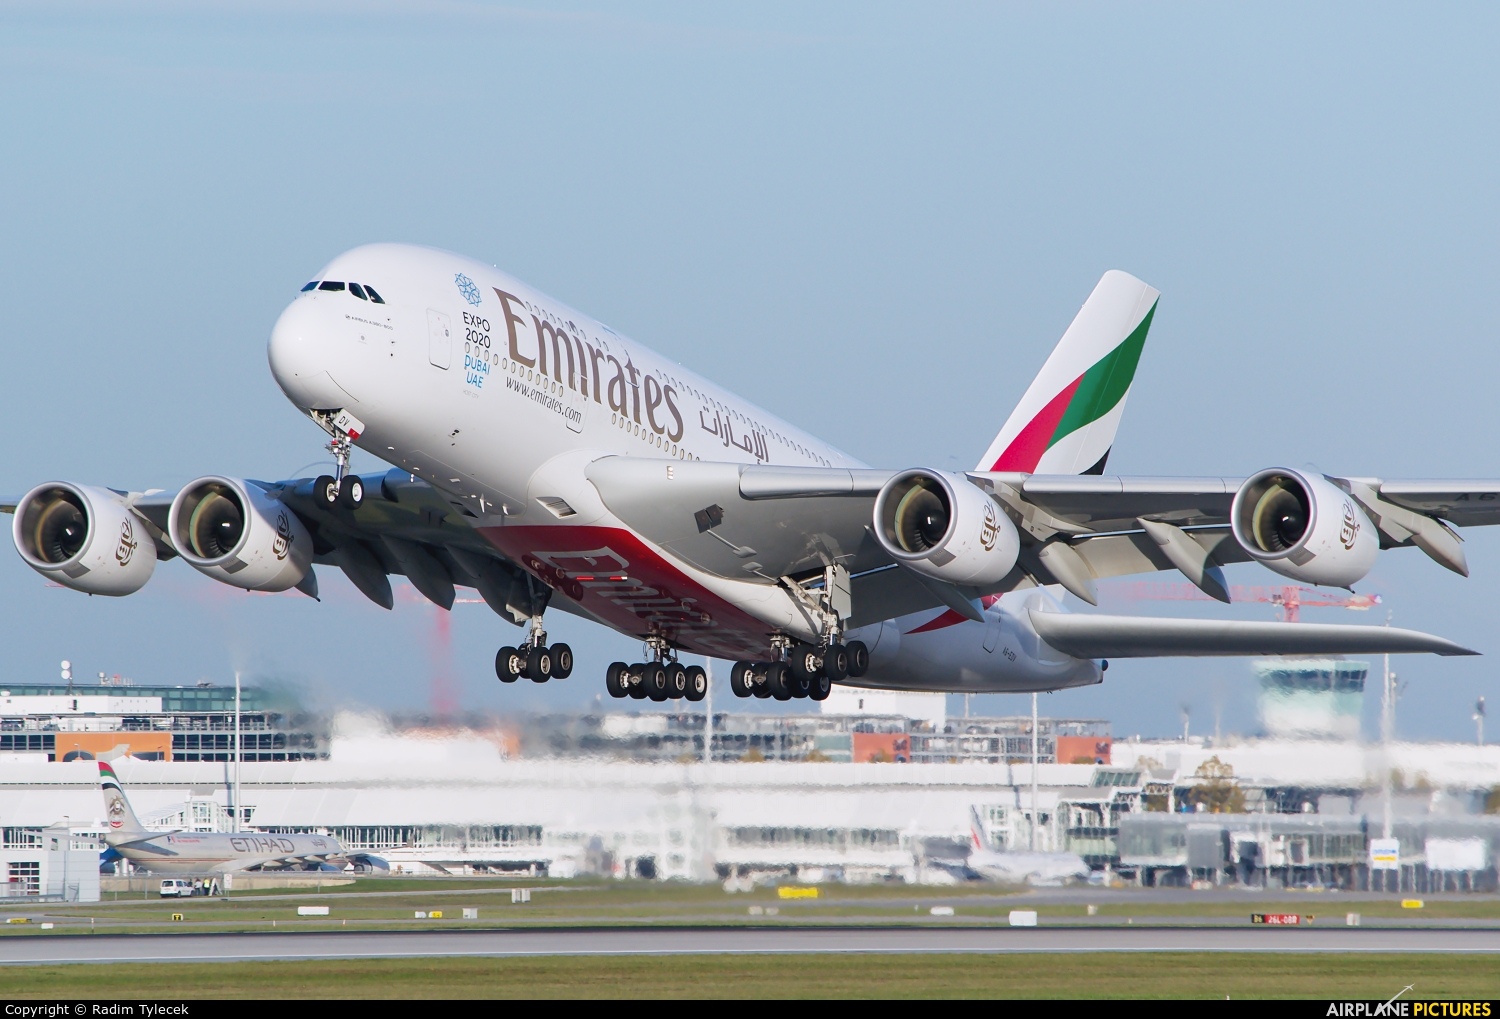 Emirates Airlines A6-EDV aircraft at Munich